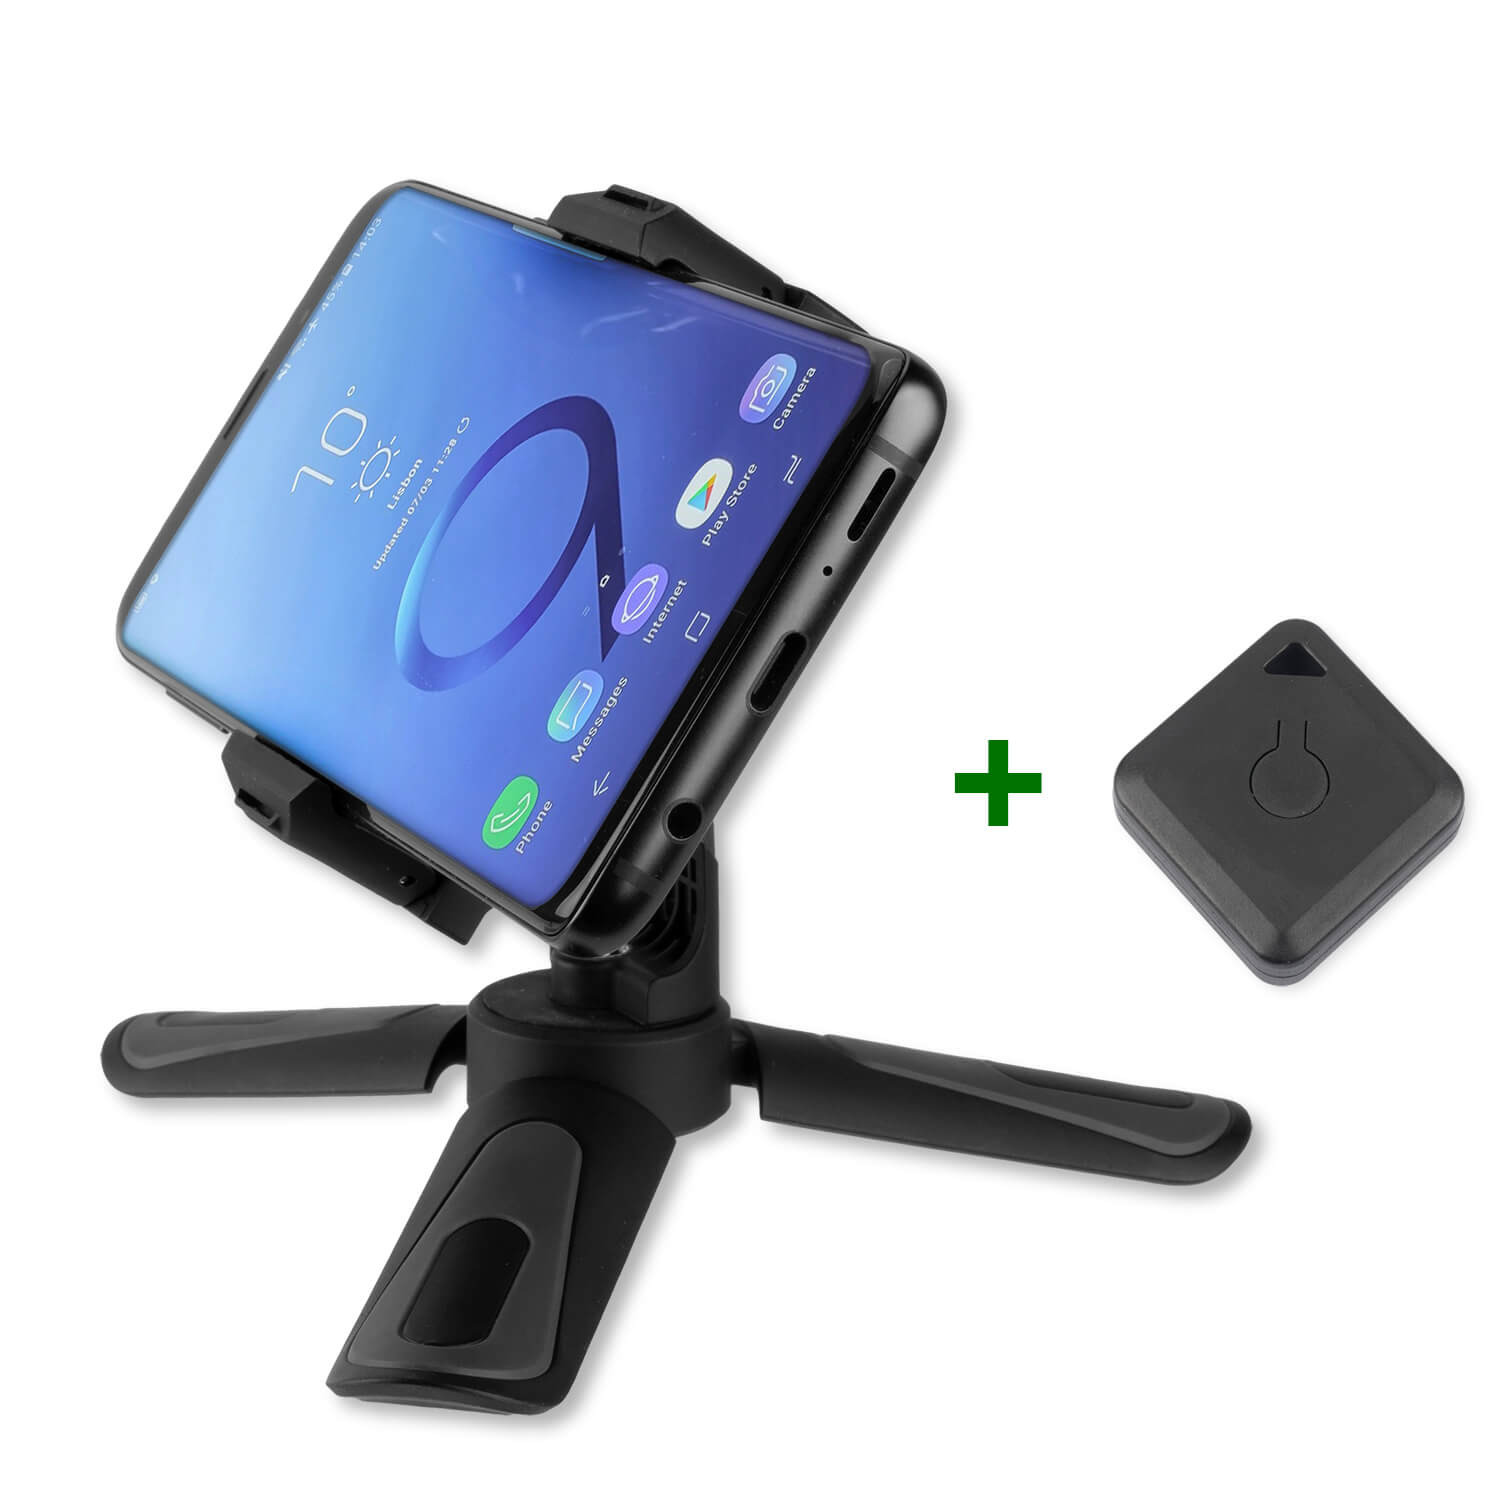 4smarts Pocket Tripod with Bluetooth Controller (black)